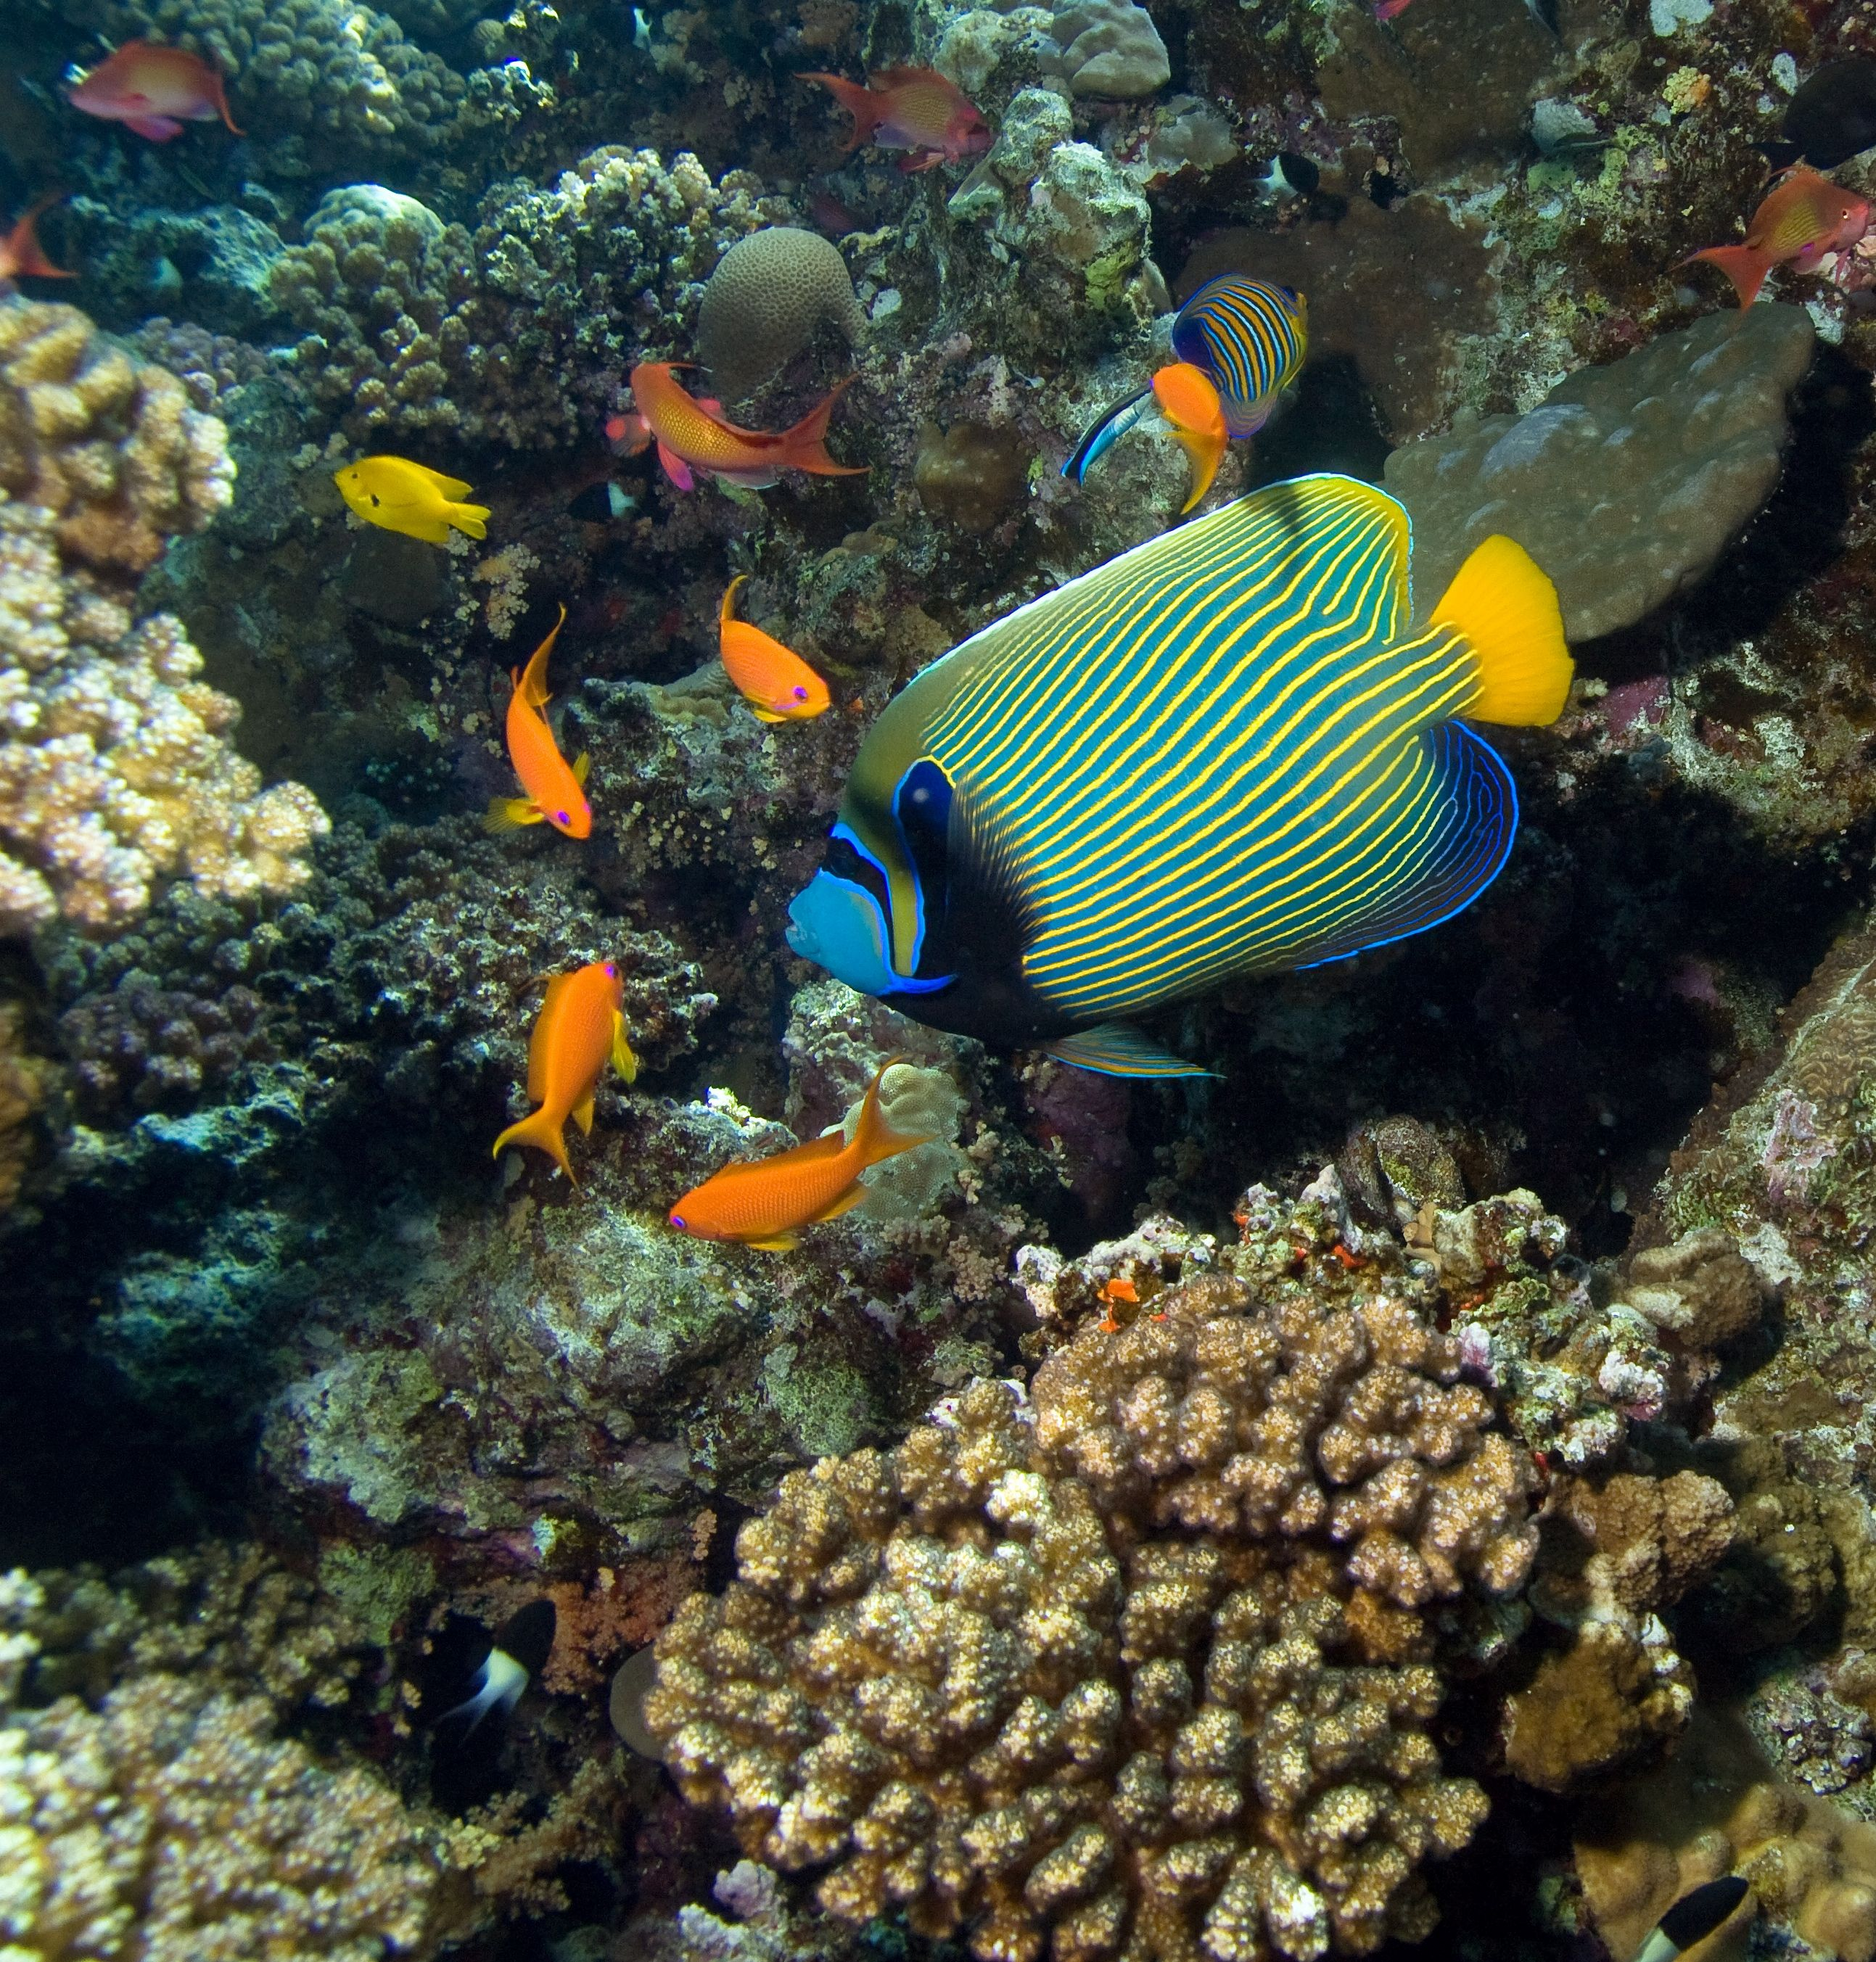 Swim with the tropical fish in the bahamas nassau for Fishing in the bahamas